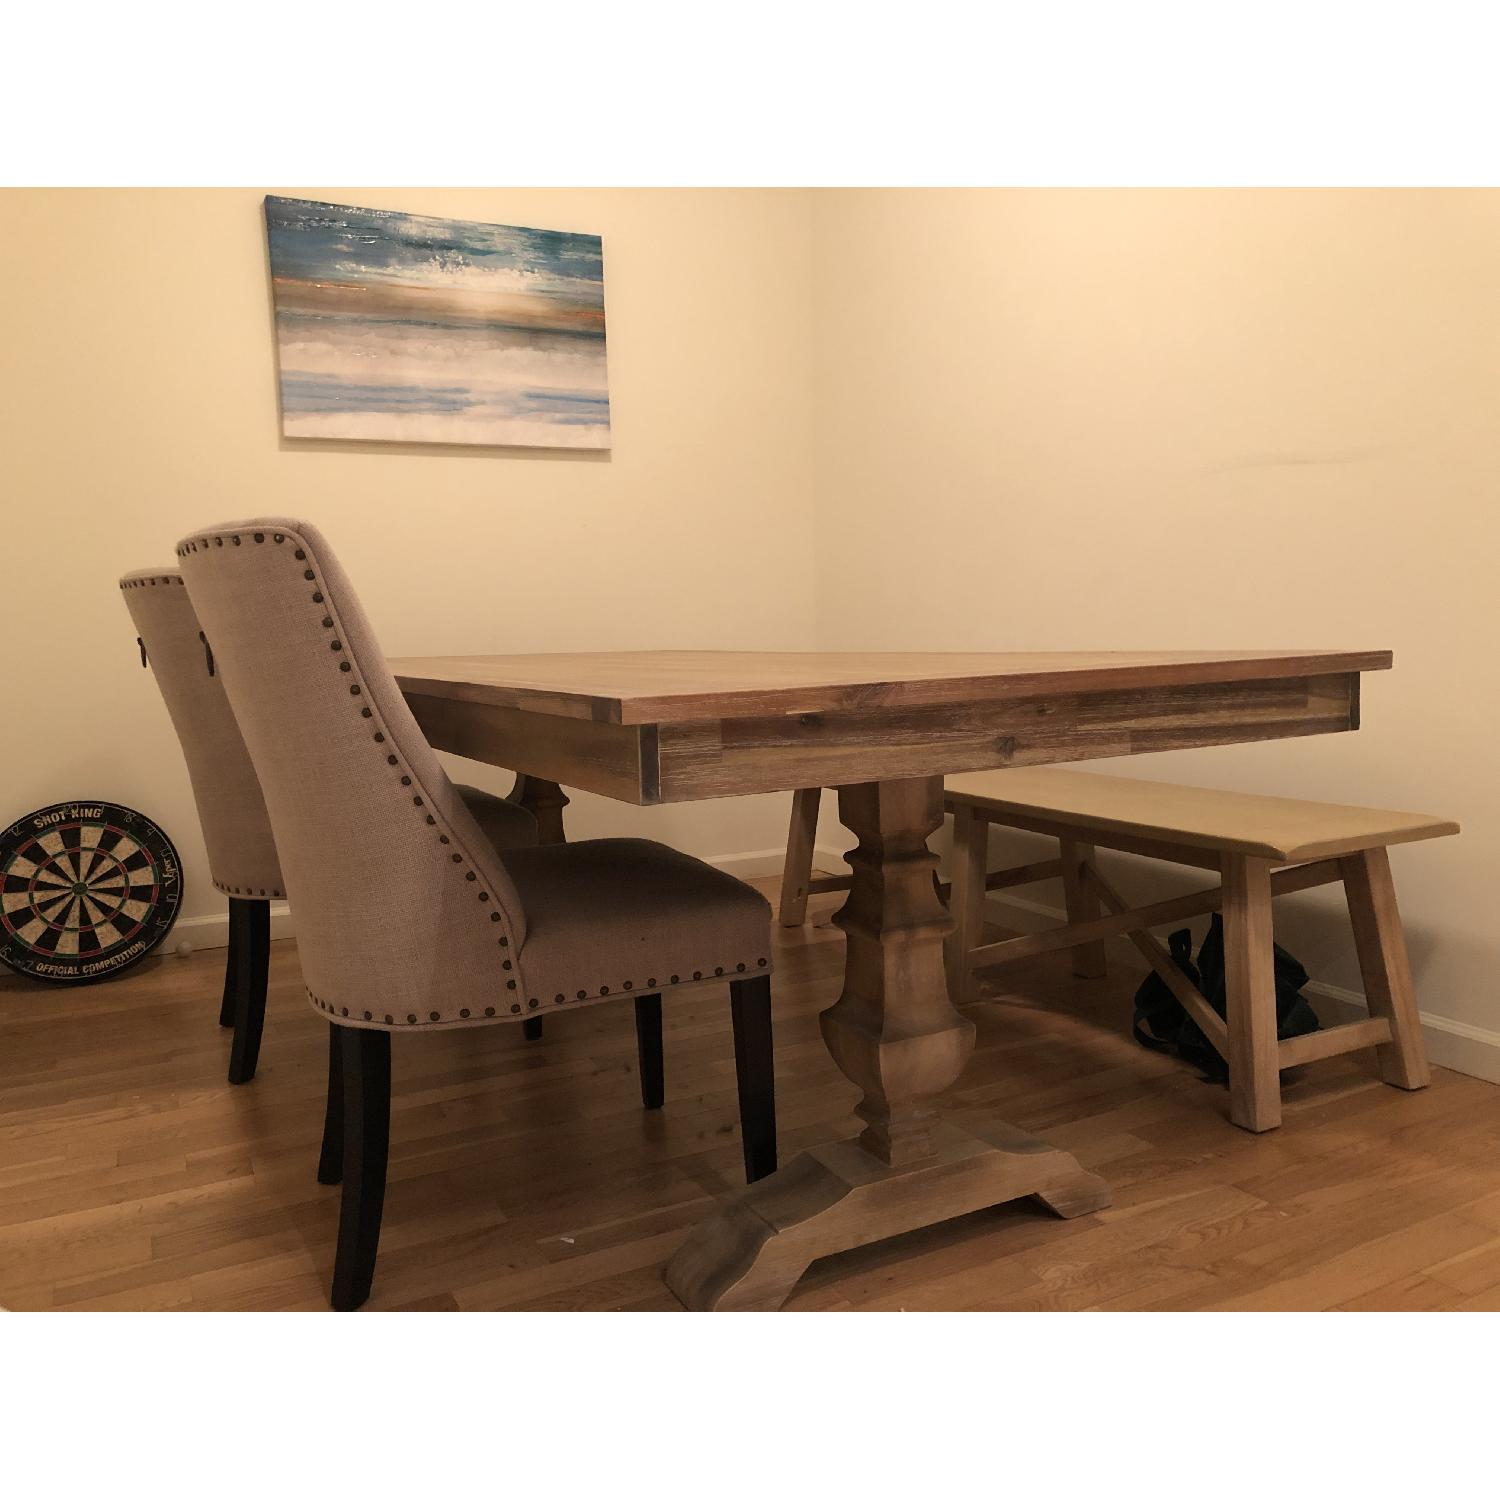 Fantastic Pier 1 Bradding Collection Shadow Gray Dining Table Aptdeco Ocoug Best Dining Table And Chair Ideas Images Ocougorg